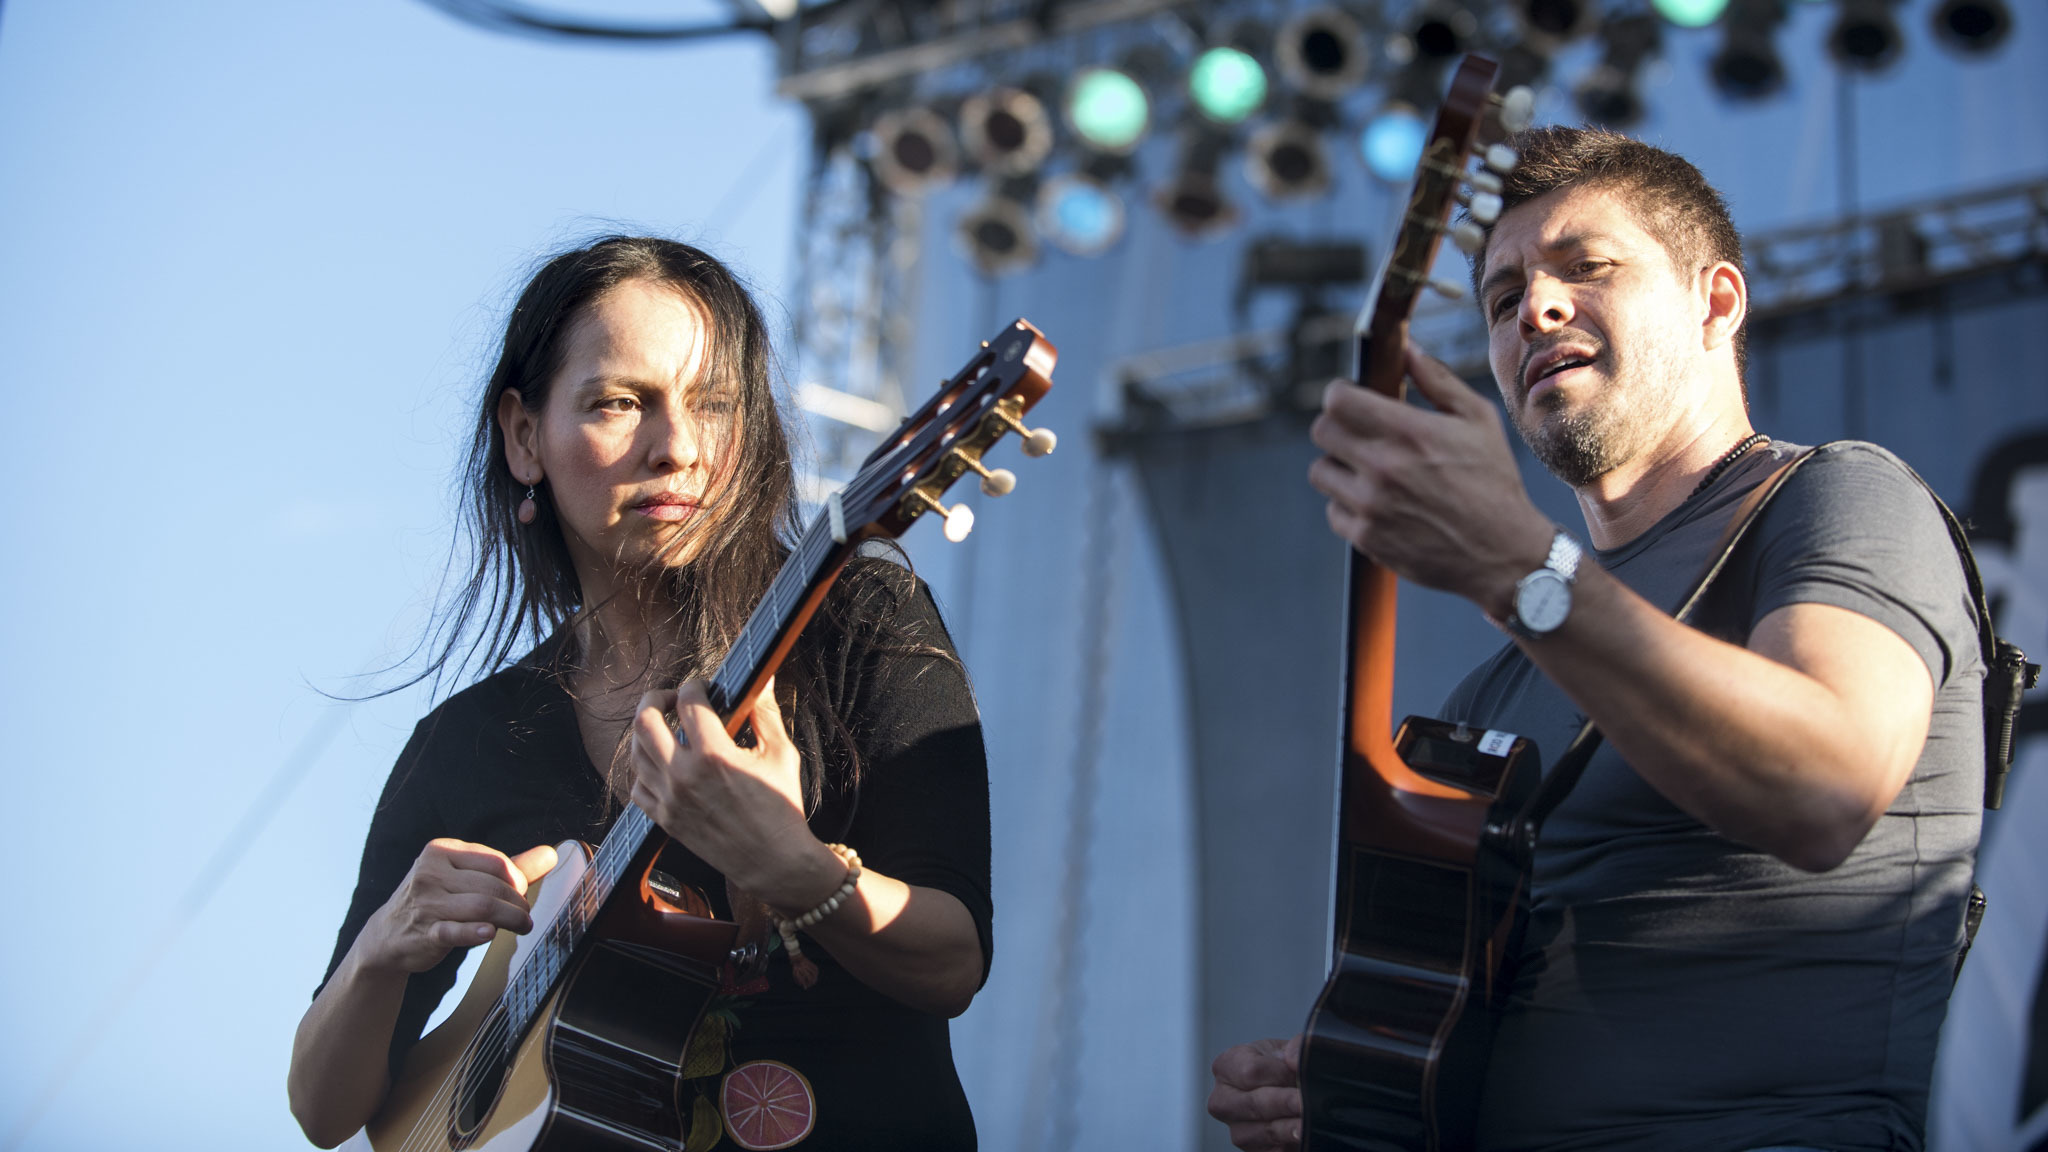 Rodrigo y Gabriela turned in a set on the final day of Riot Fest, September 13, 2015.